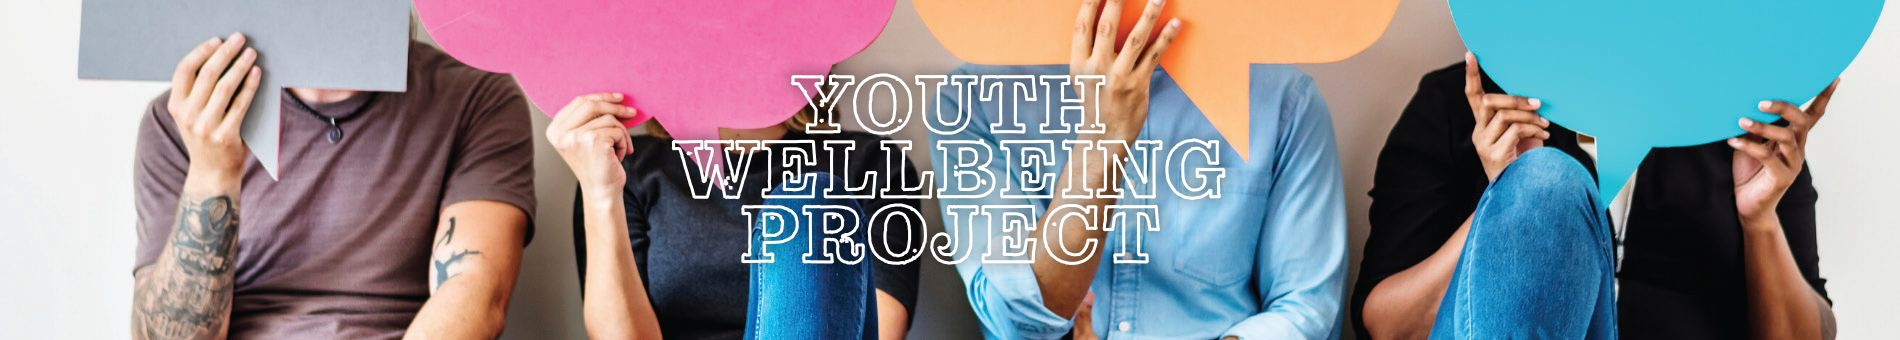 An image for Youth Wellbeing Project.